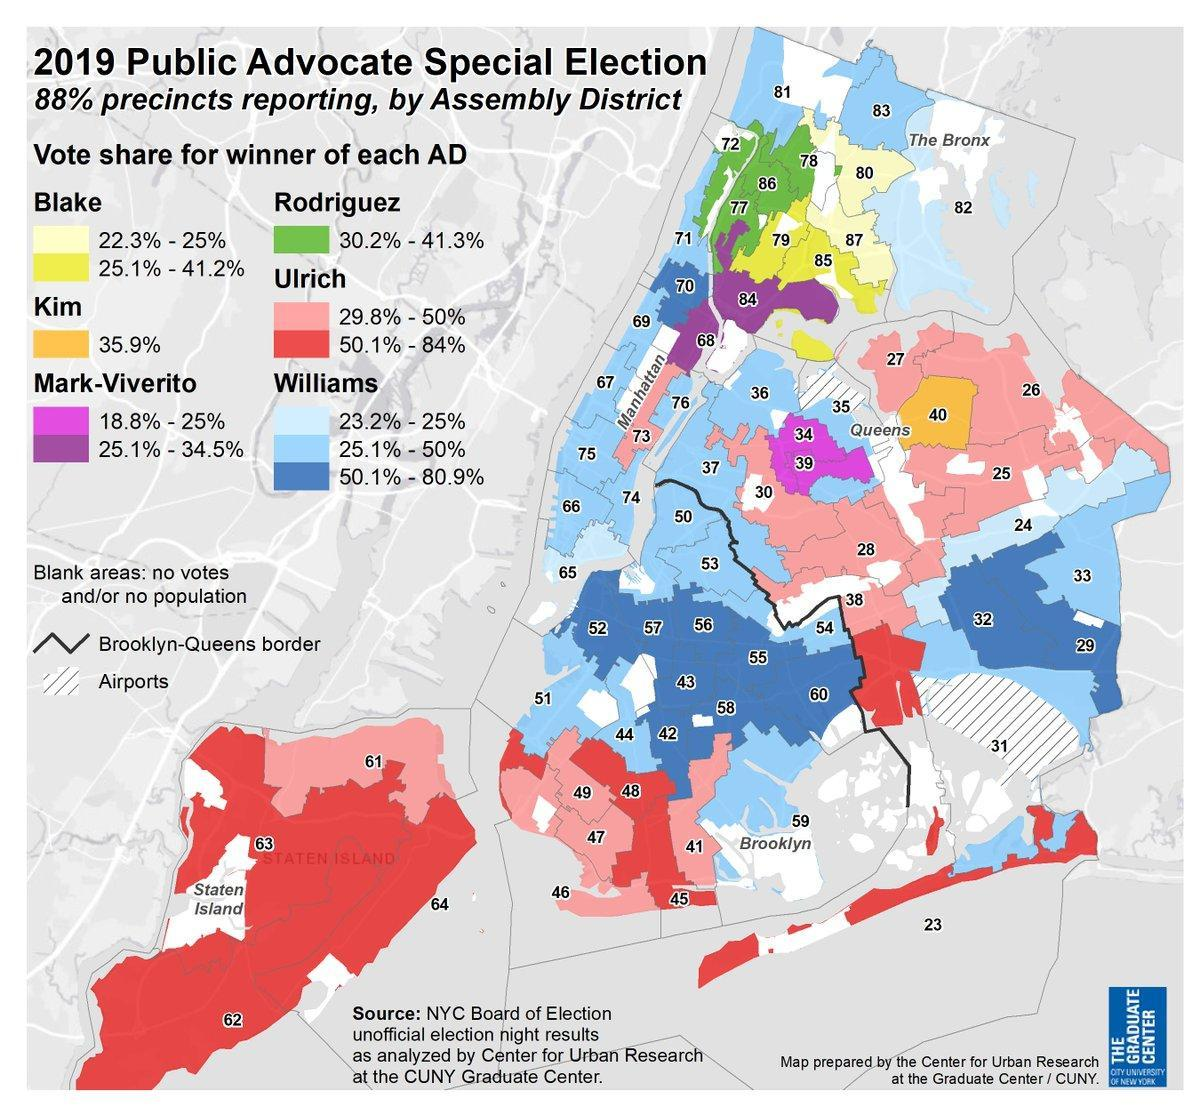 A map of election results by state assembly district reveal the ideological divides across Queens and New York City — divides that often cleave along racial and ethnic lines. Map via the CUNY Graduate Center